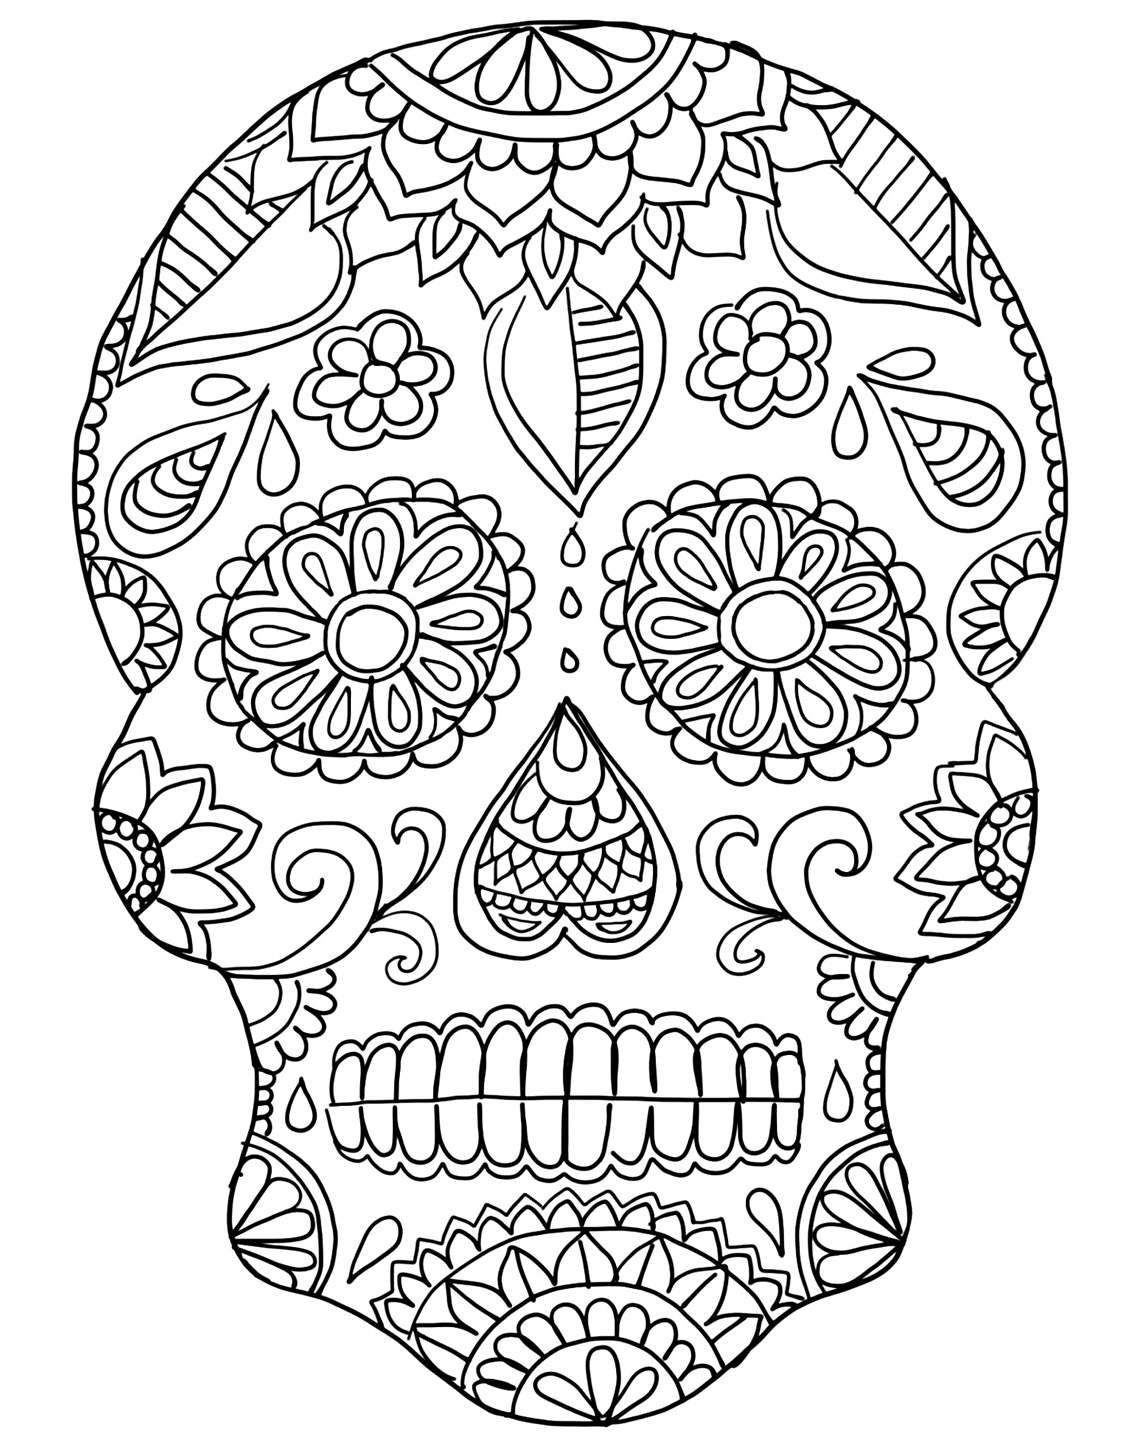 Day Of The Dead Coloring Pages Pdf at GetColorings.com